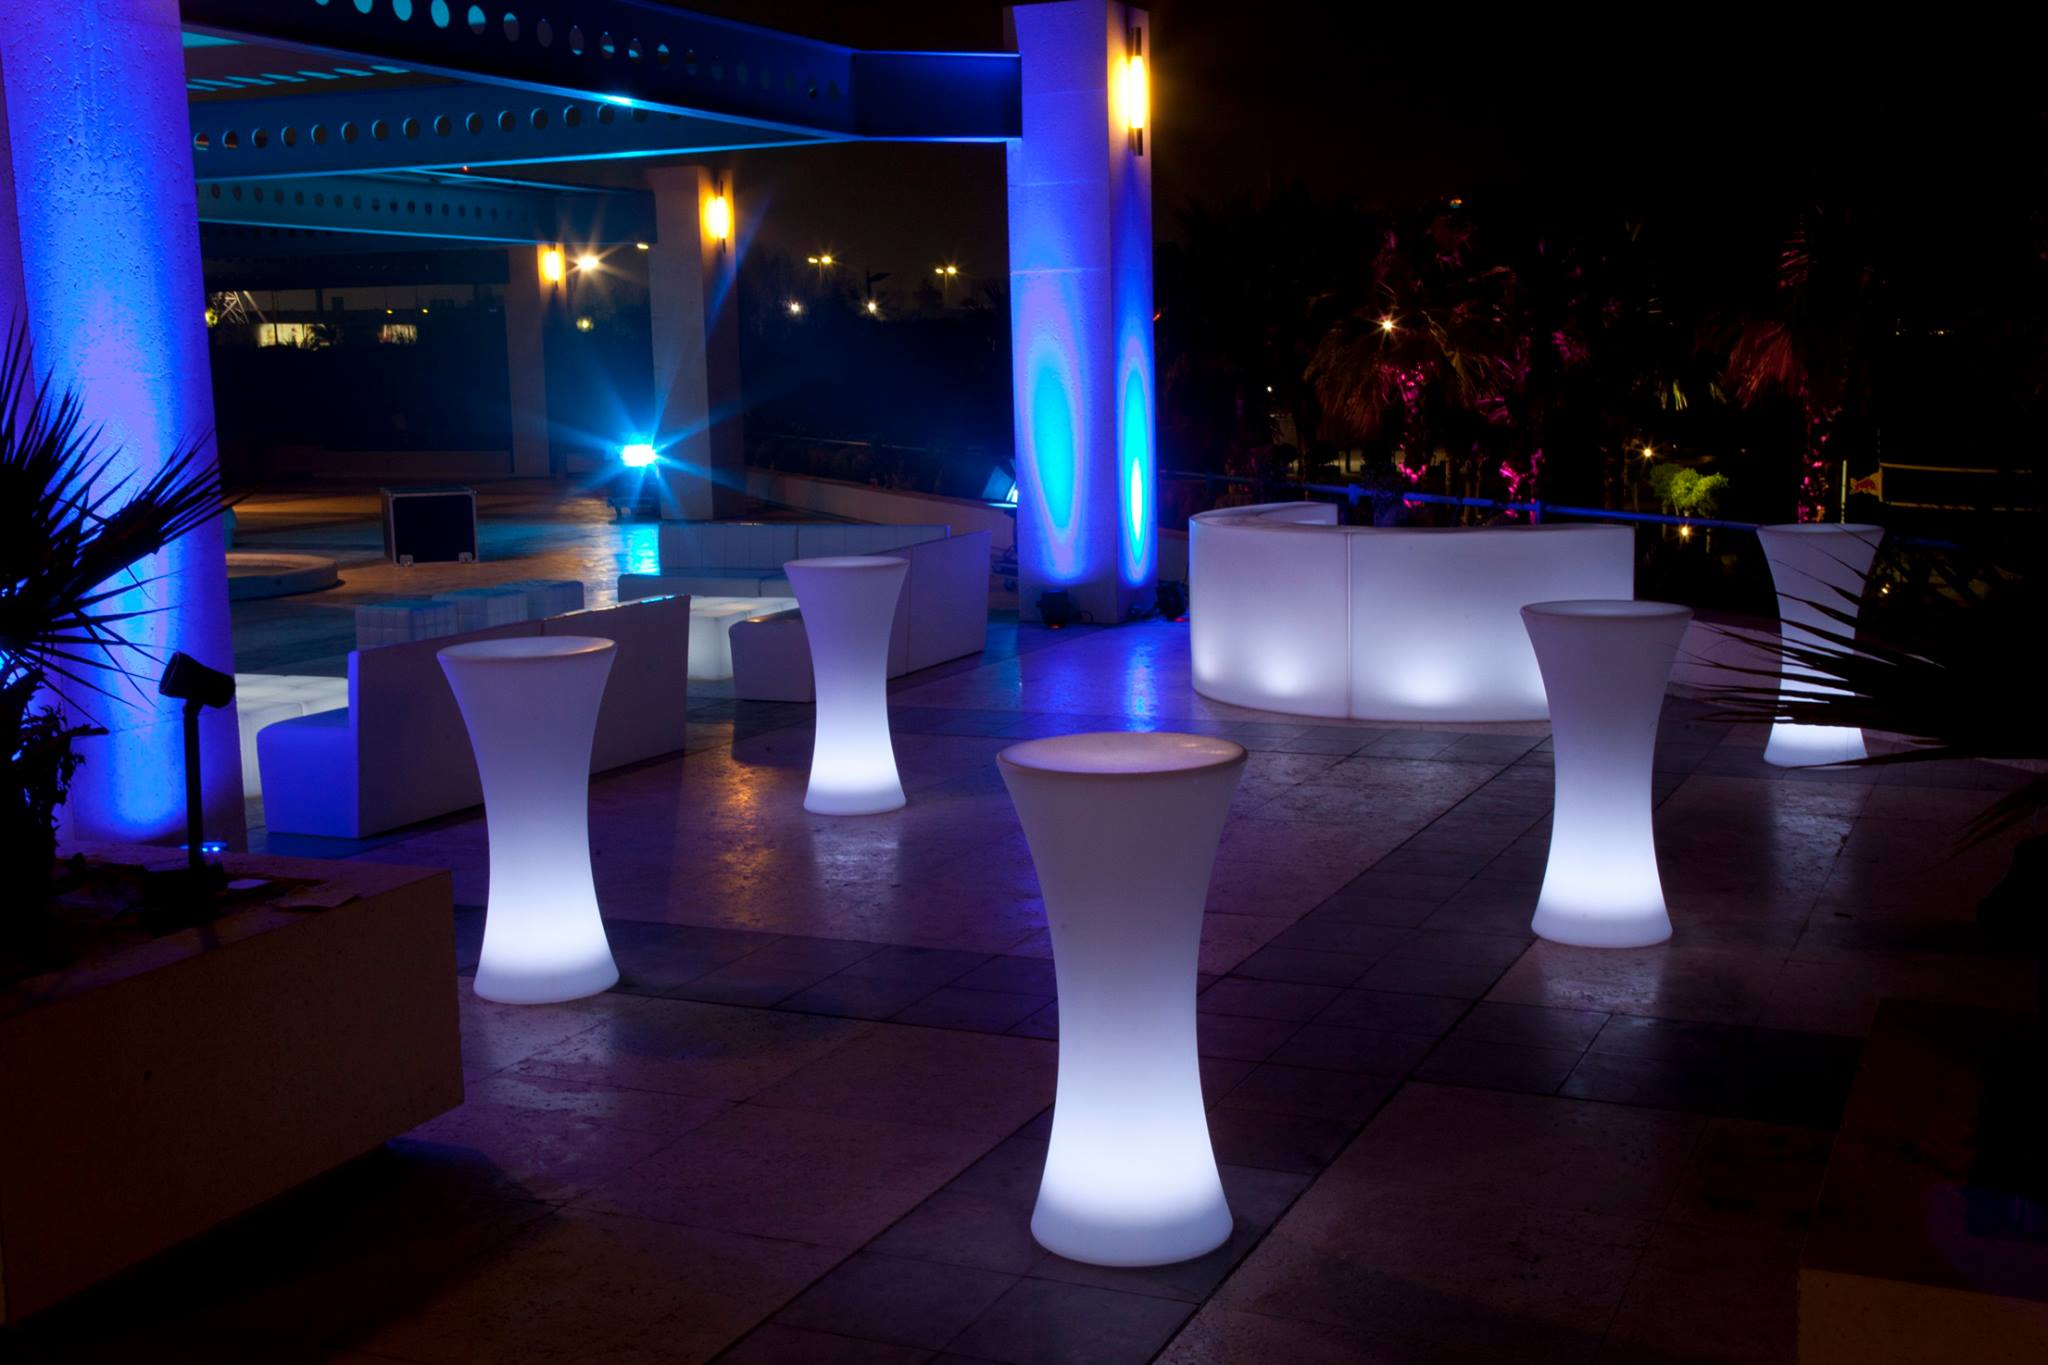 Brand New In Led Furniture 171 Well Dressed Tables News